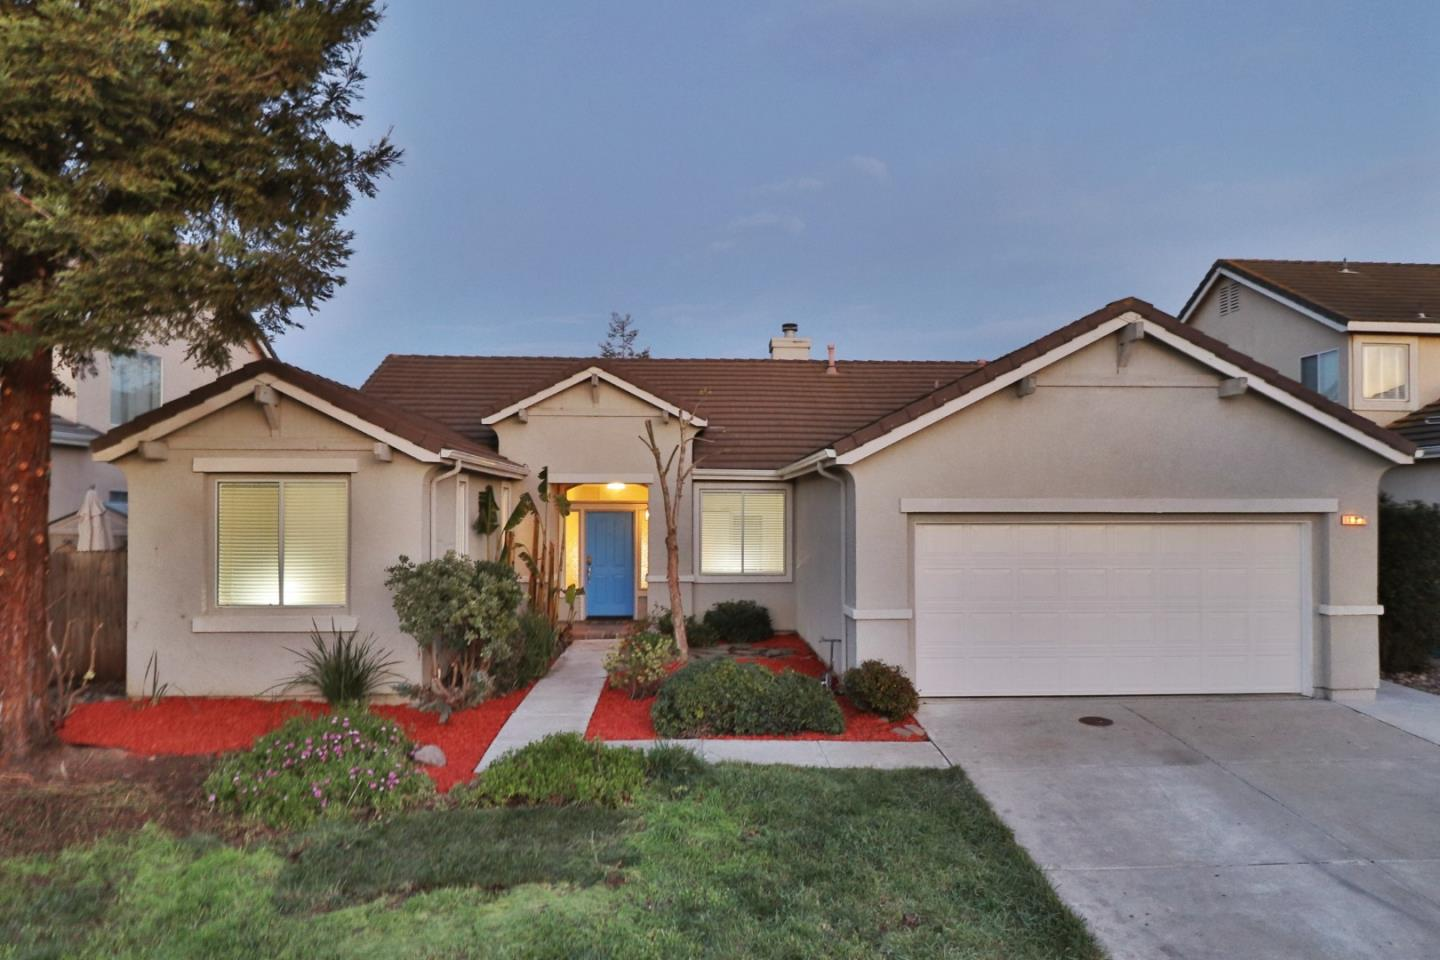 Detail Gallery Image 1 of 1 For 131 Marguerite Dr, Hollister, CA, 95023 - 4 Beds   2 Baths